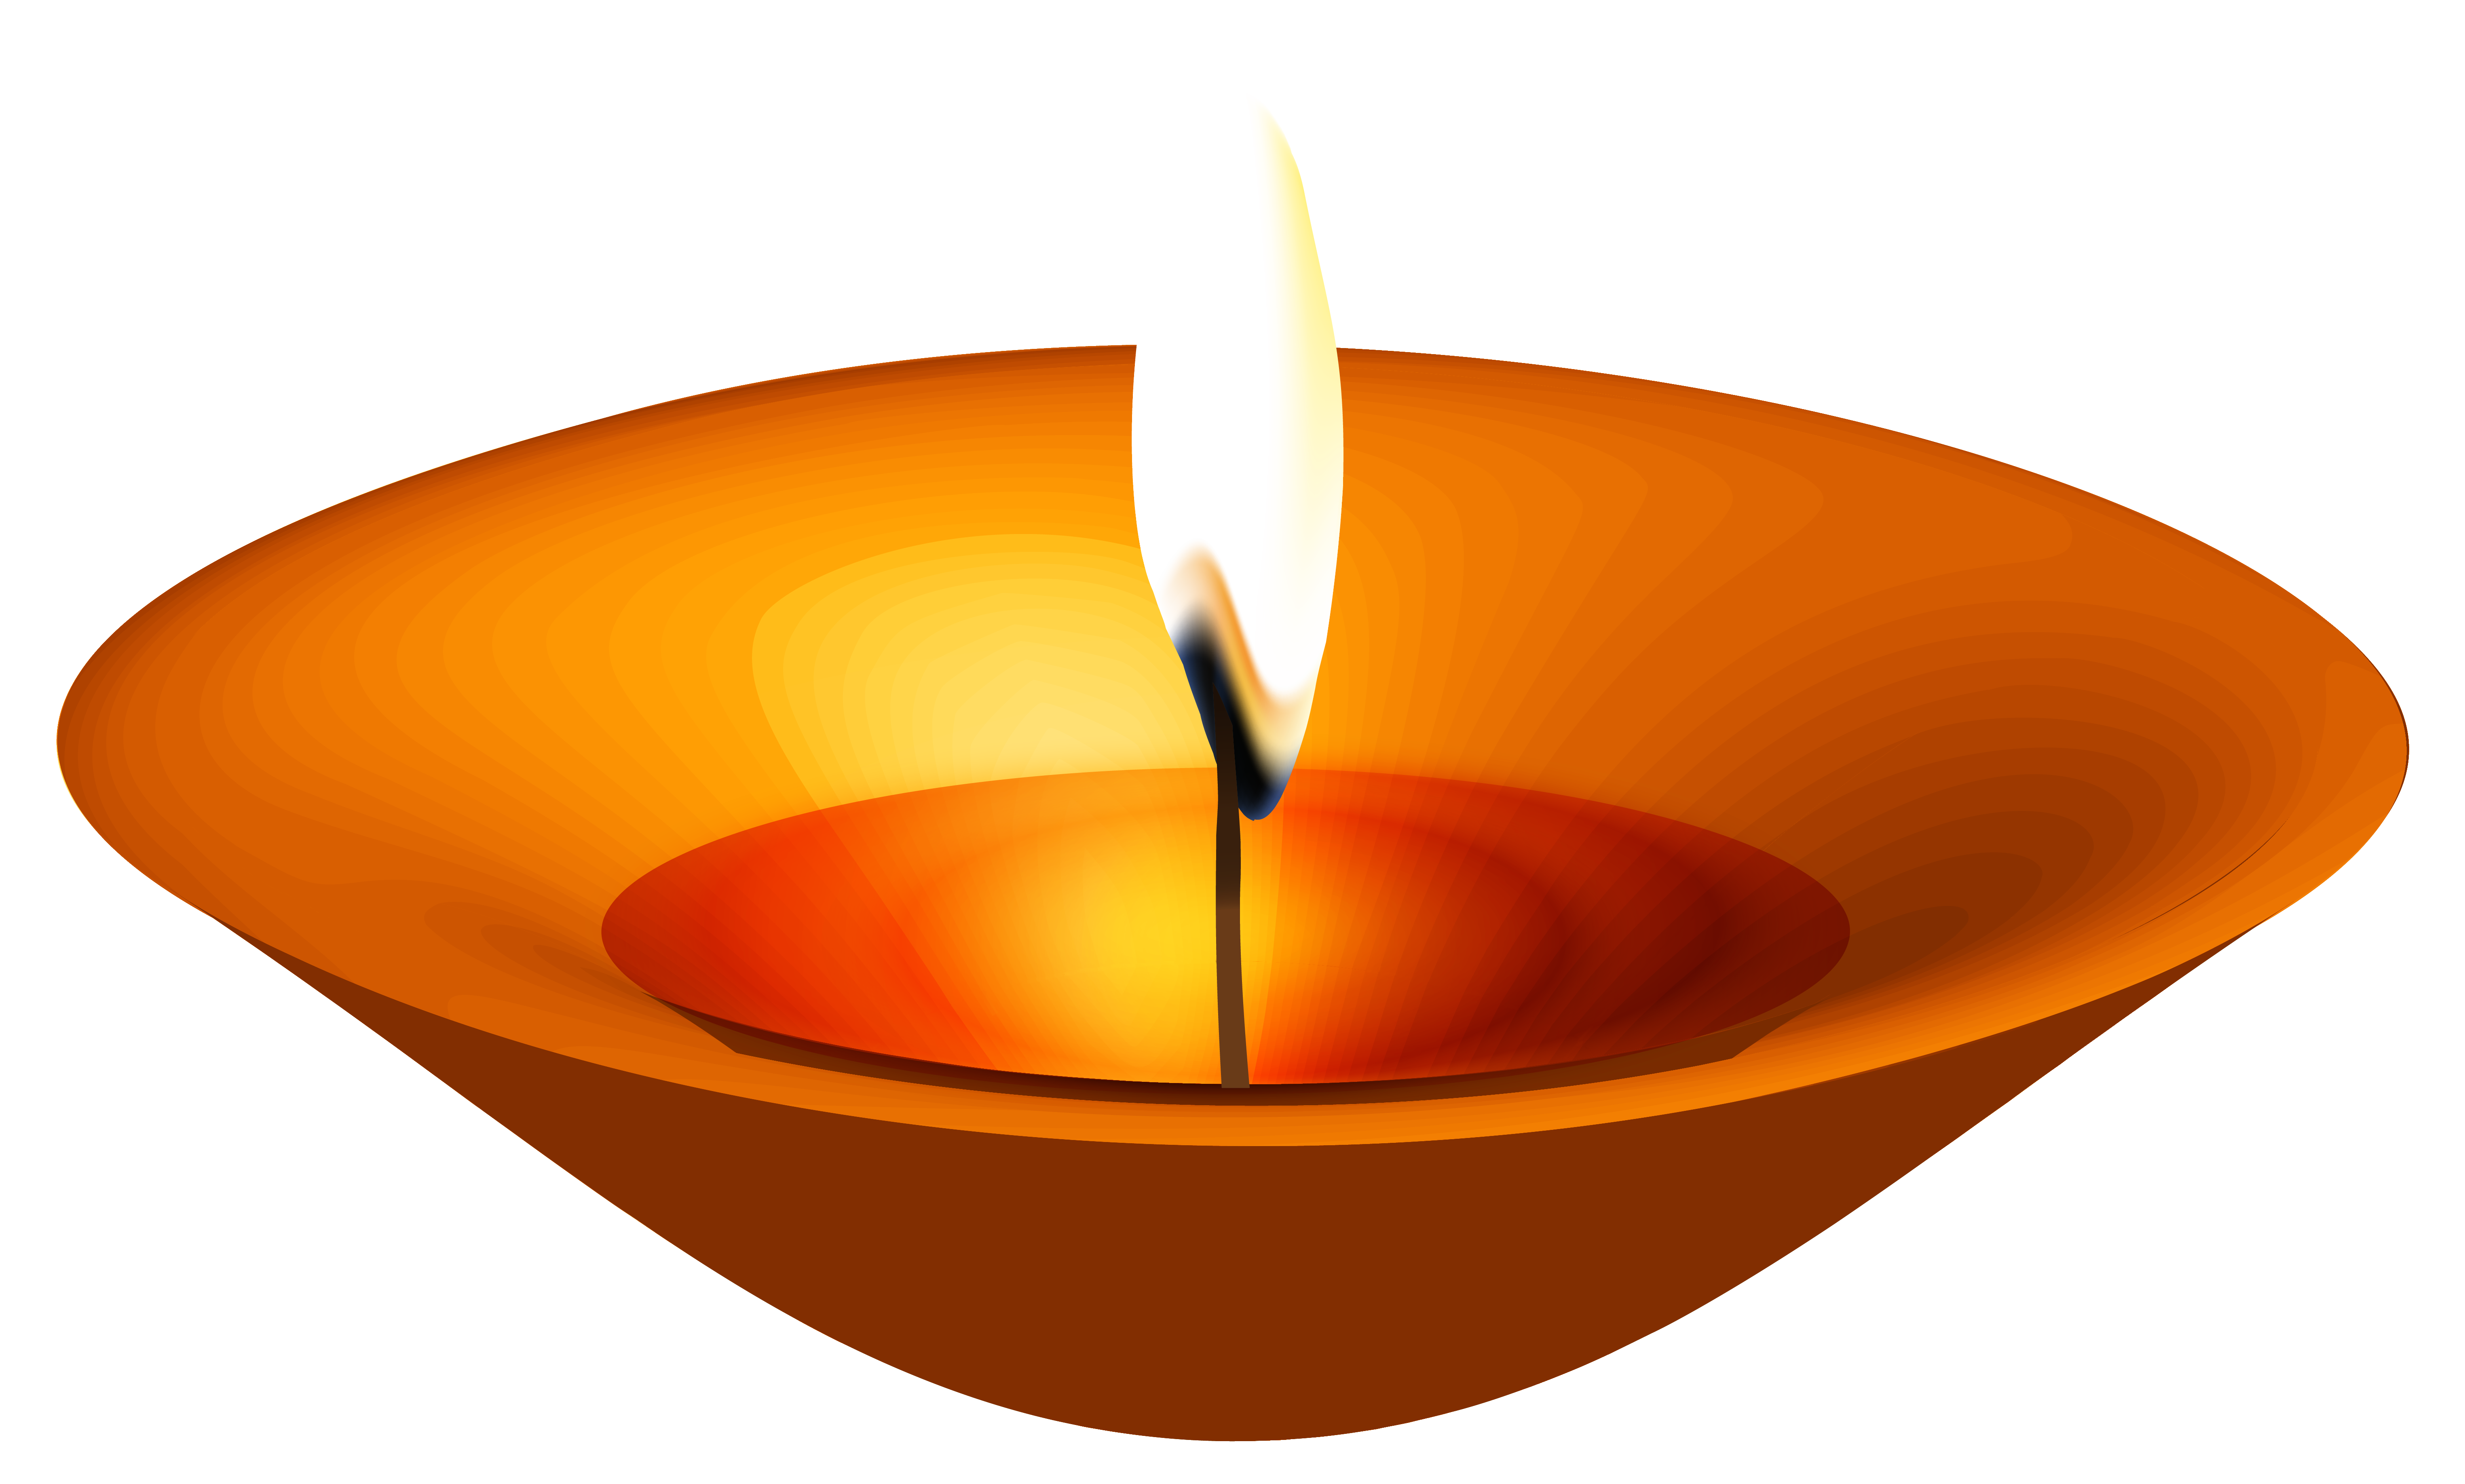 Clipart flames oil. Diwali candle png image